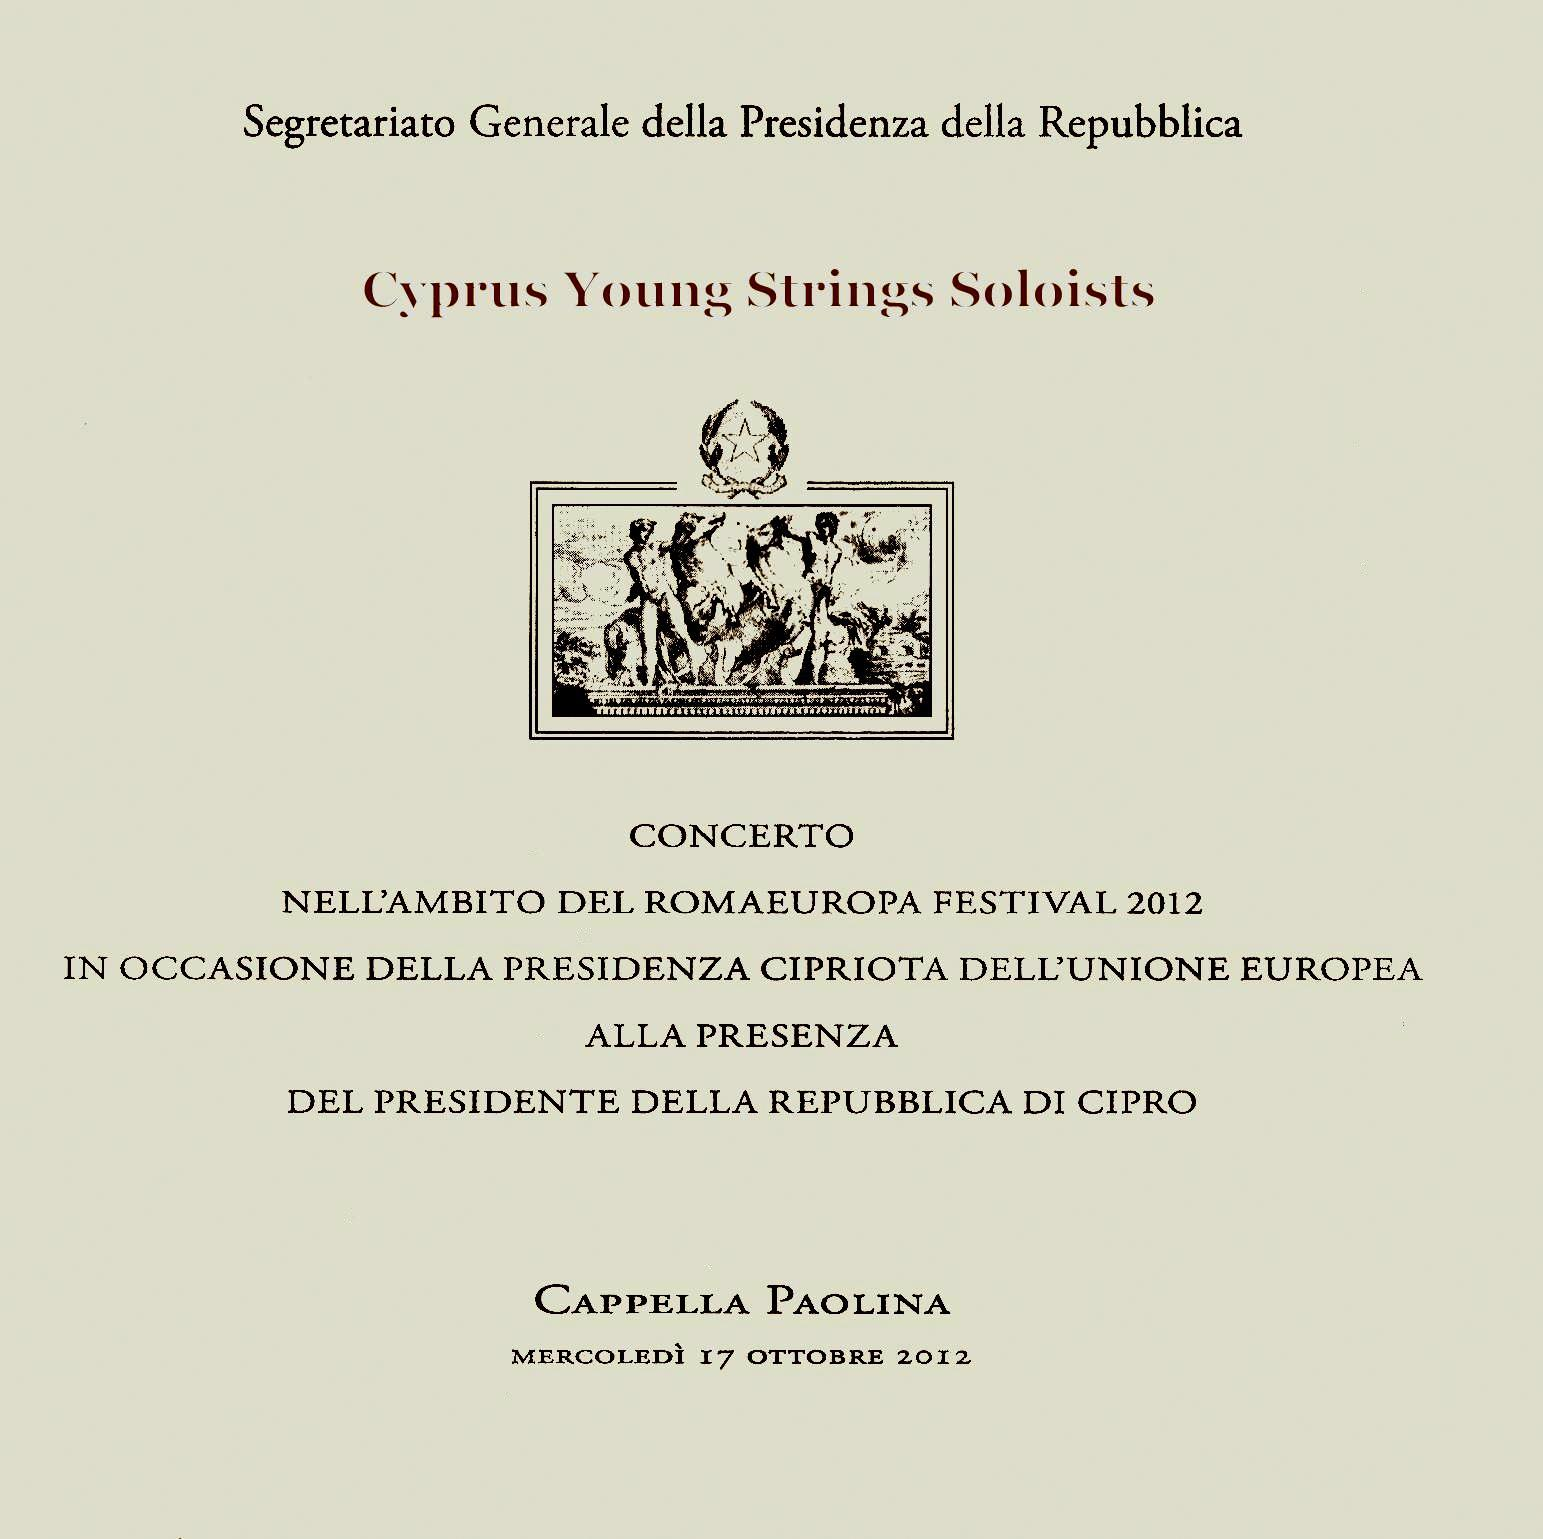 Cyprus Young Strings Soloists